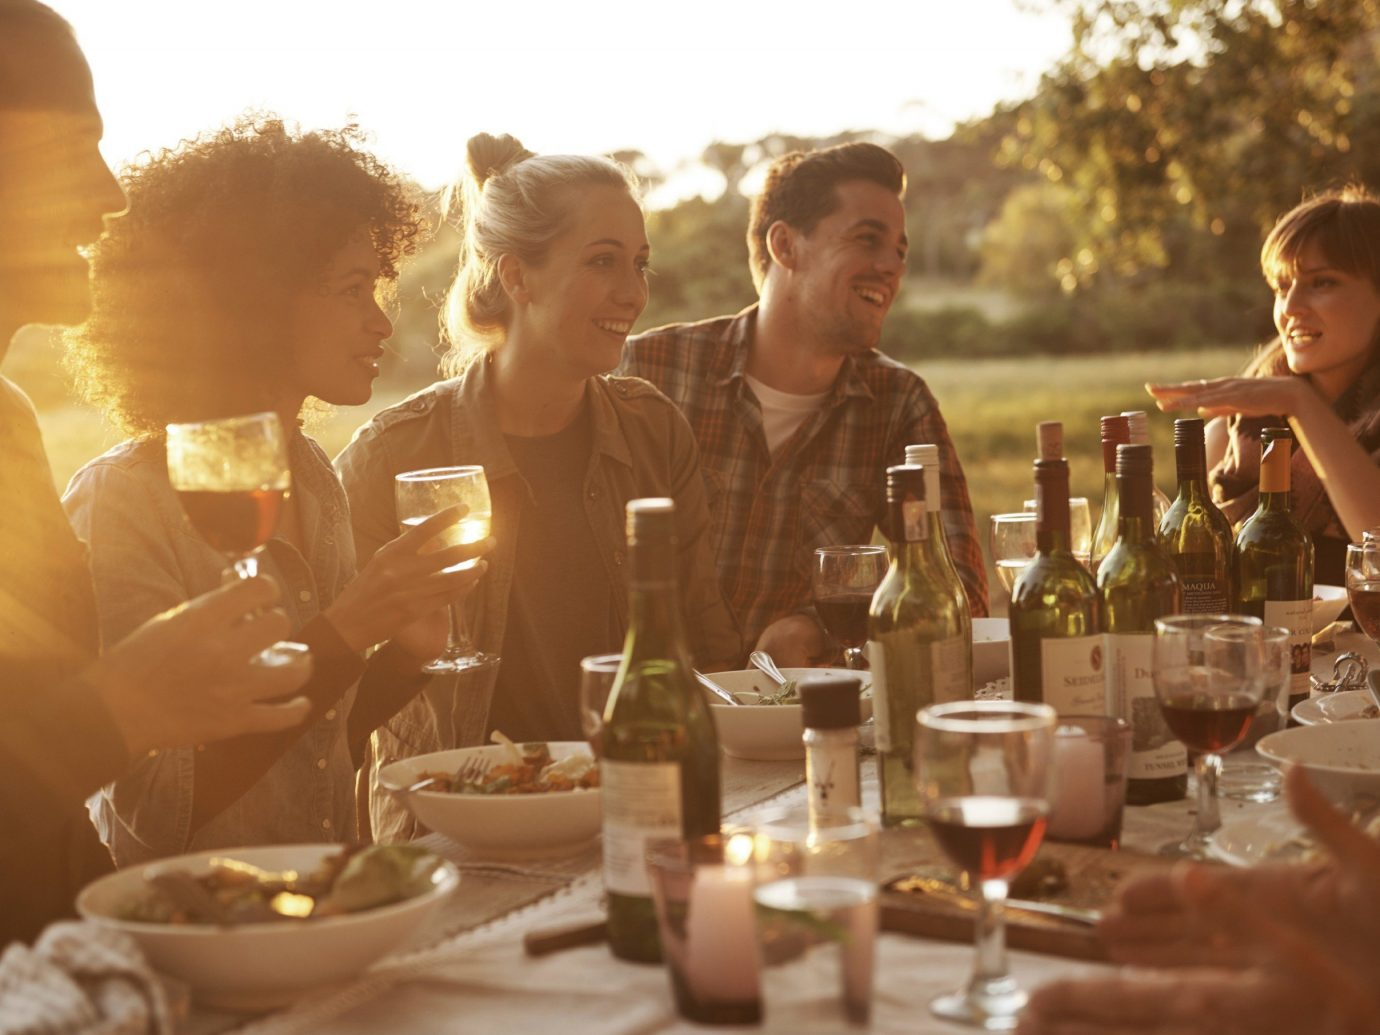 Outdoors + Adventure person table people meal dinner rehearsal dinner ceremony sense drinking dining table